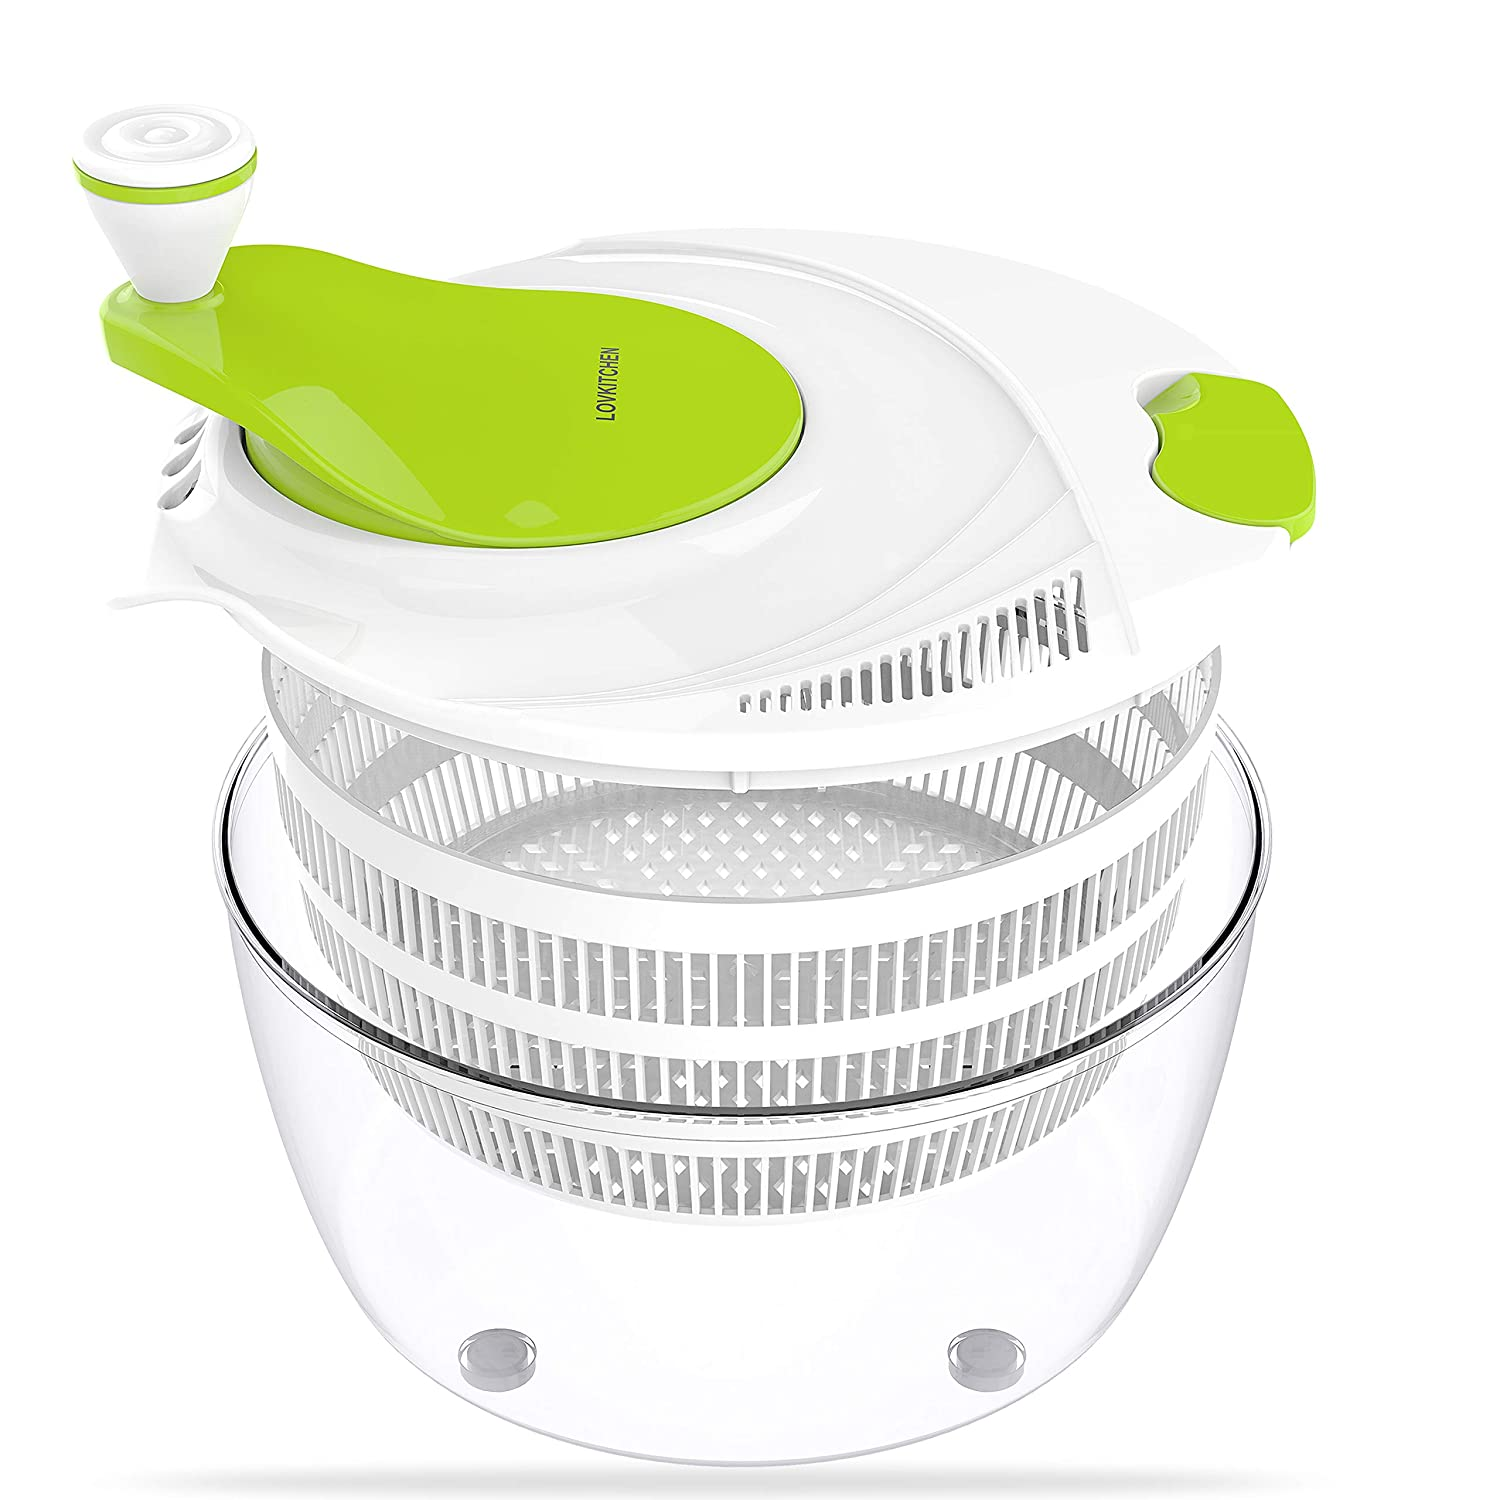 LOVKITCHEN Salad Spinner, Plastic Kitchen Large 4 Quarts Fruits and Vegetables Dryer Quick Dry Design BPA Free Dry Off & Drain Lettuce and Vegetable - Green-White LOVSHARE